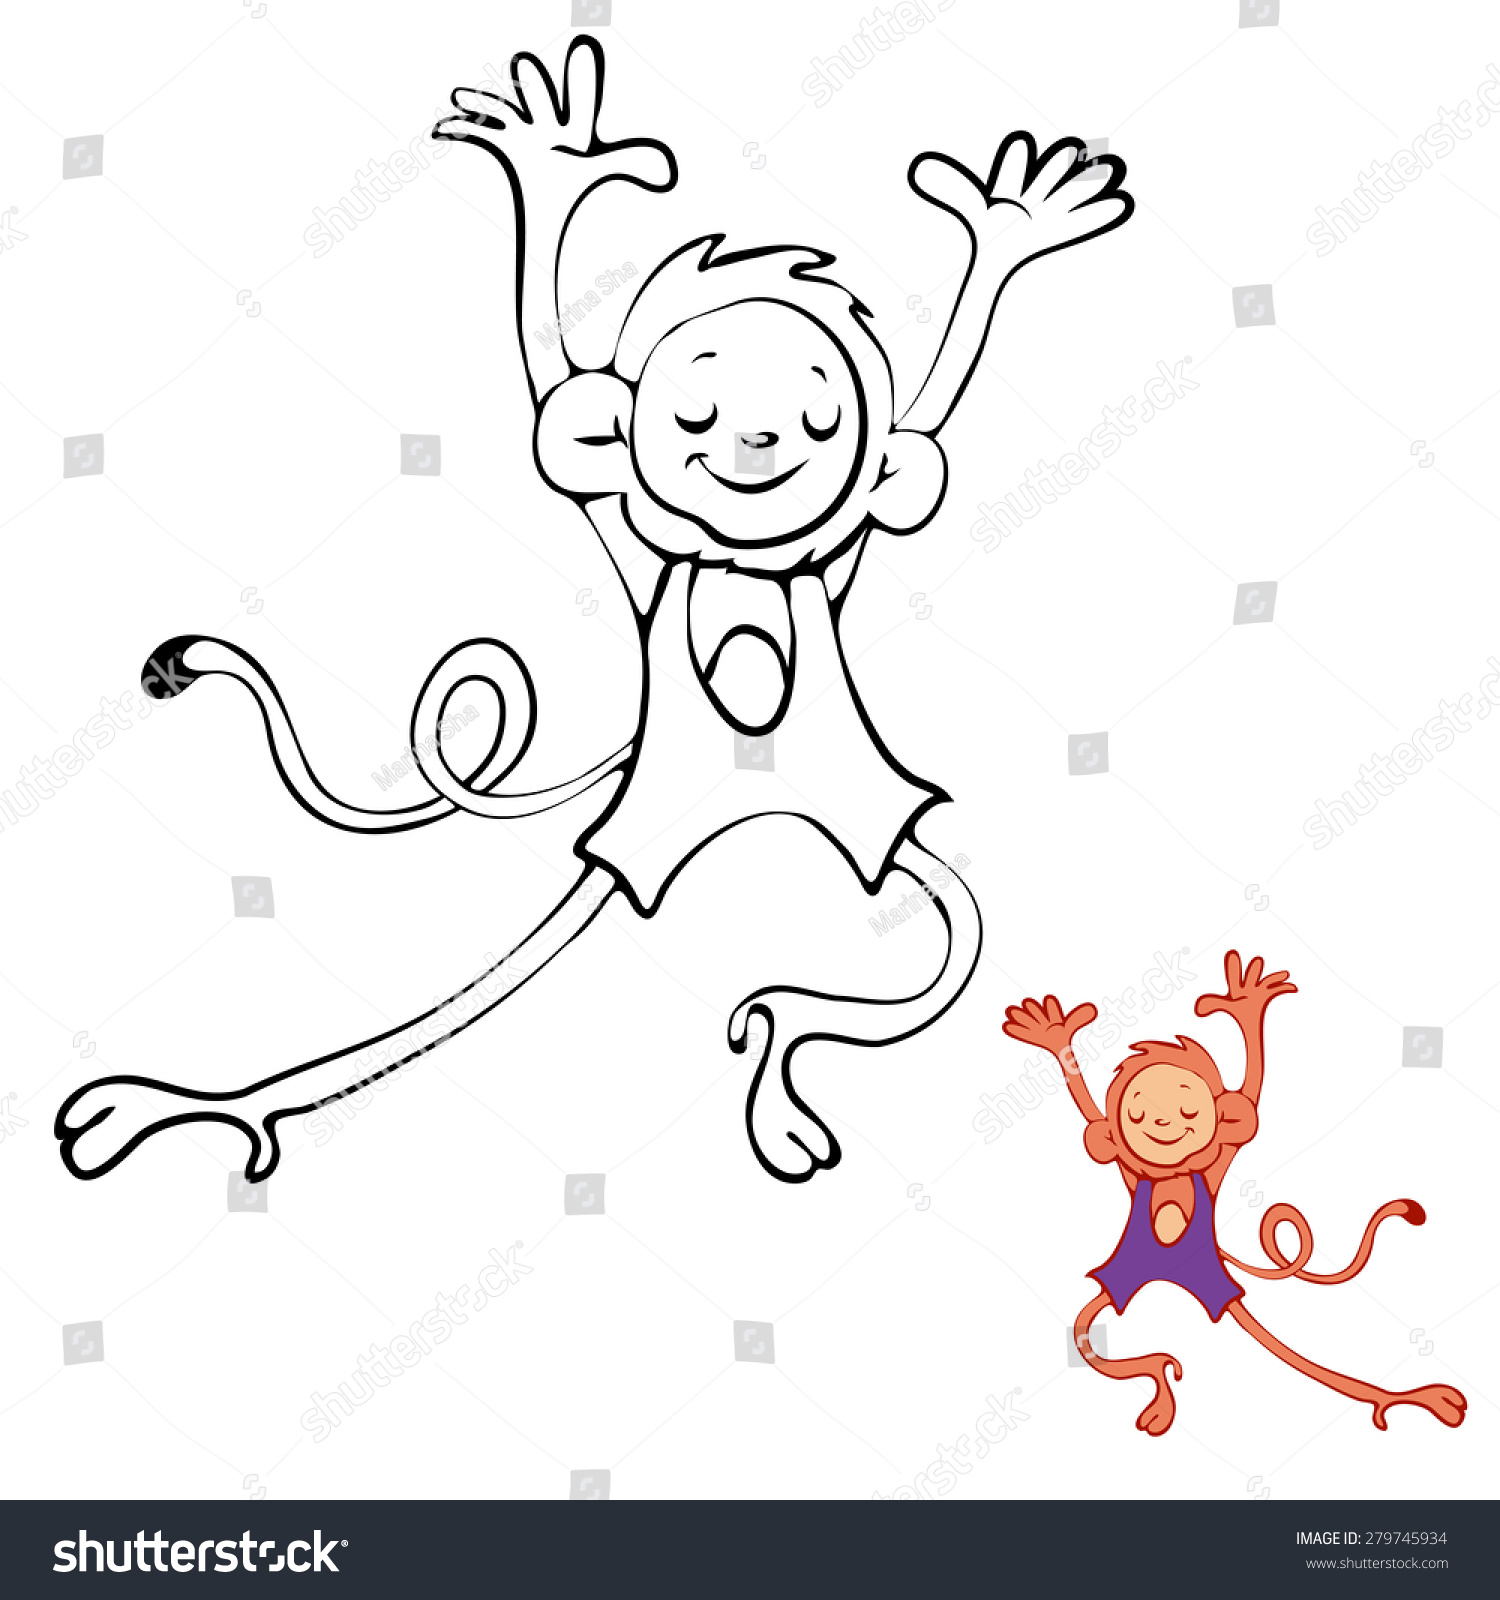 Coloring Book Monkey Kids Layout Game Stock Vector 279745934 ...